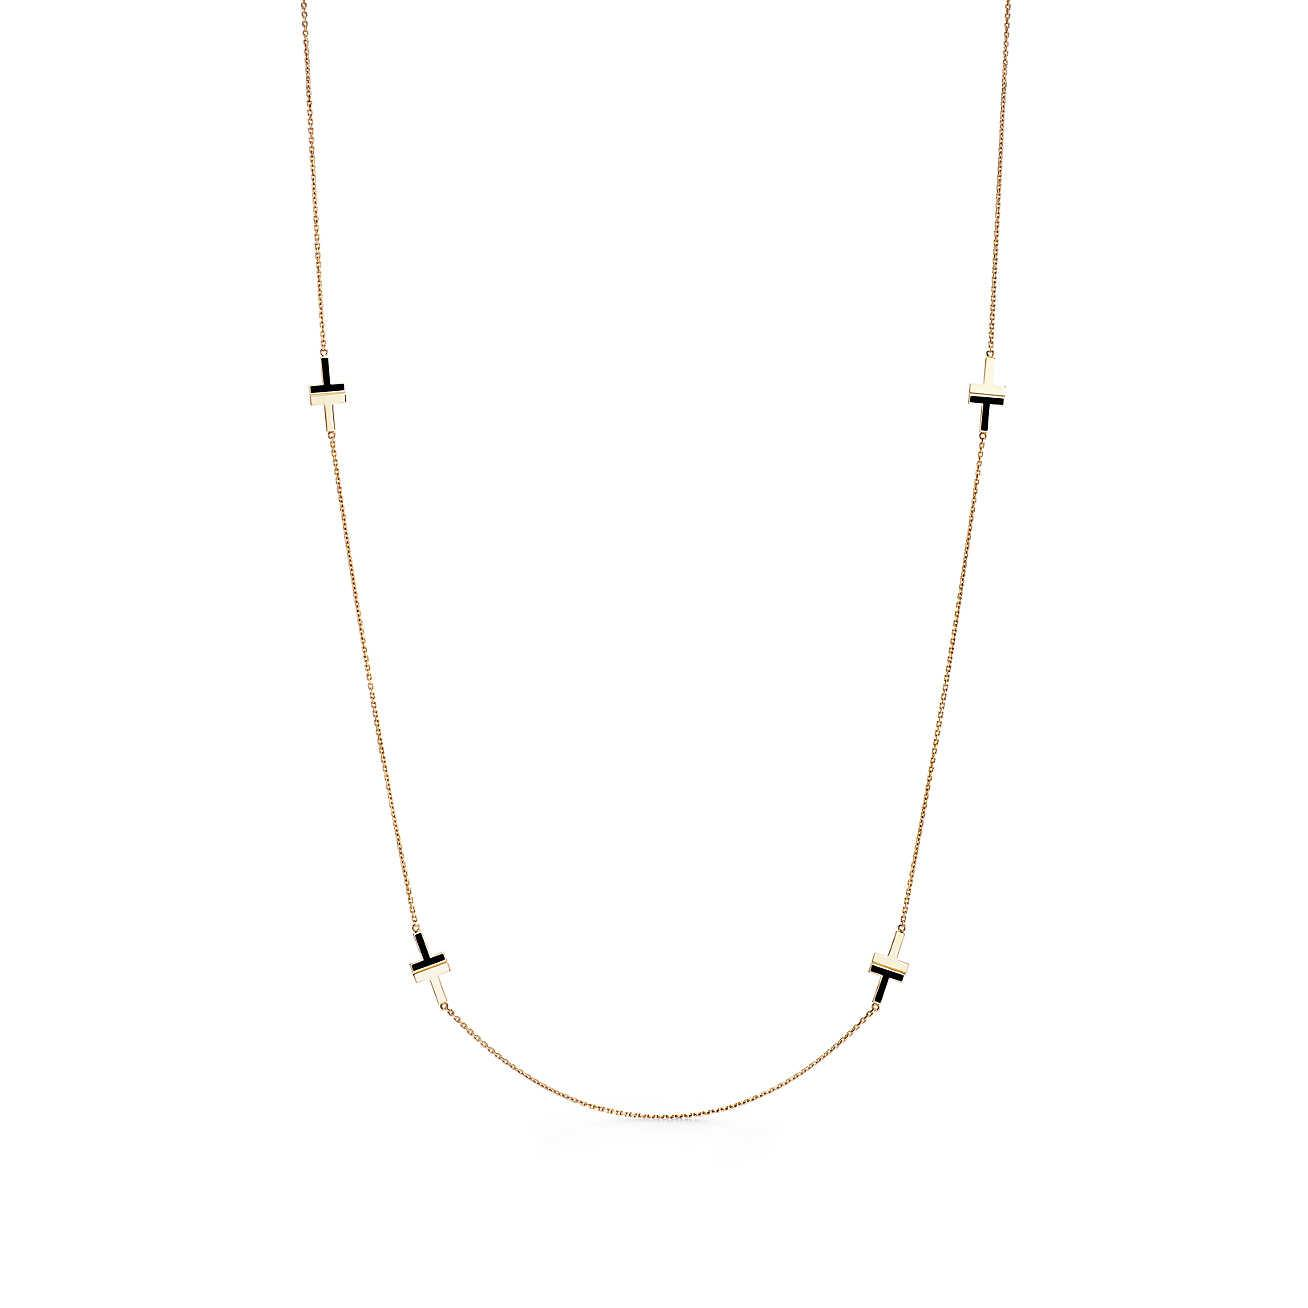 Tiffany T Two black onyx necklace in 18k gold